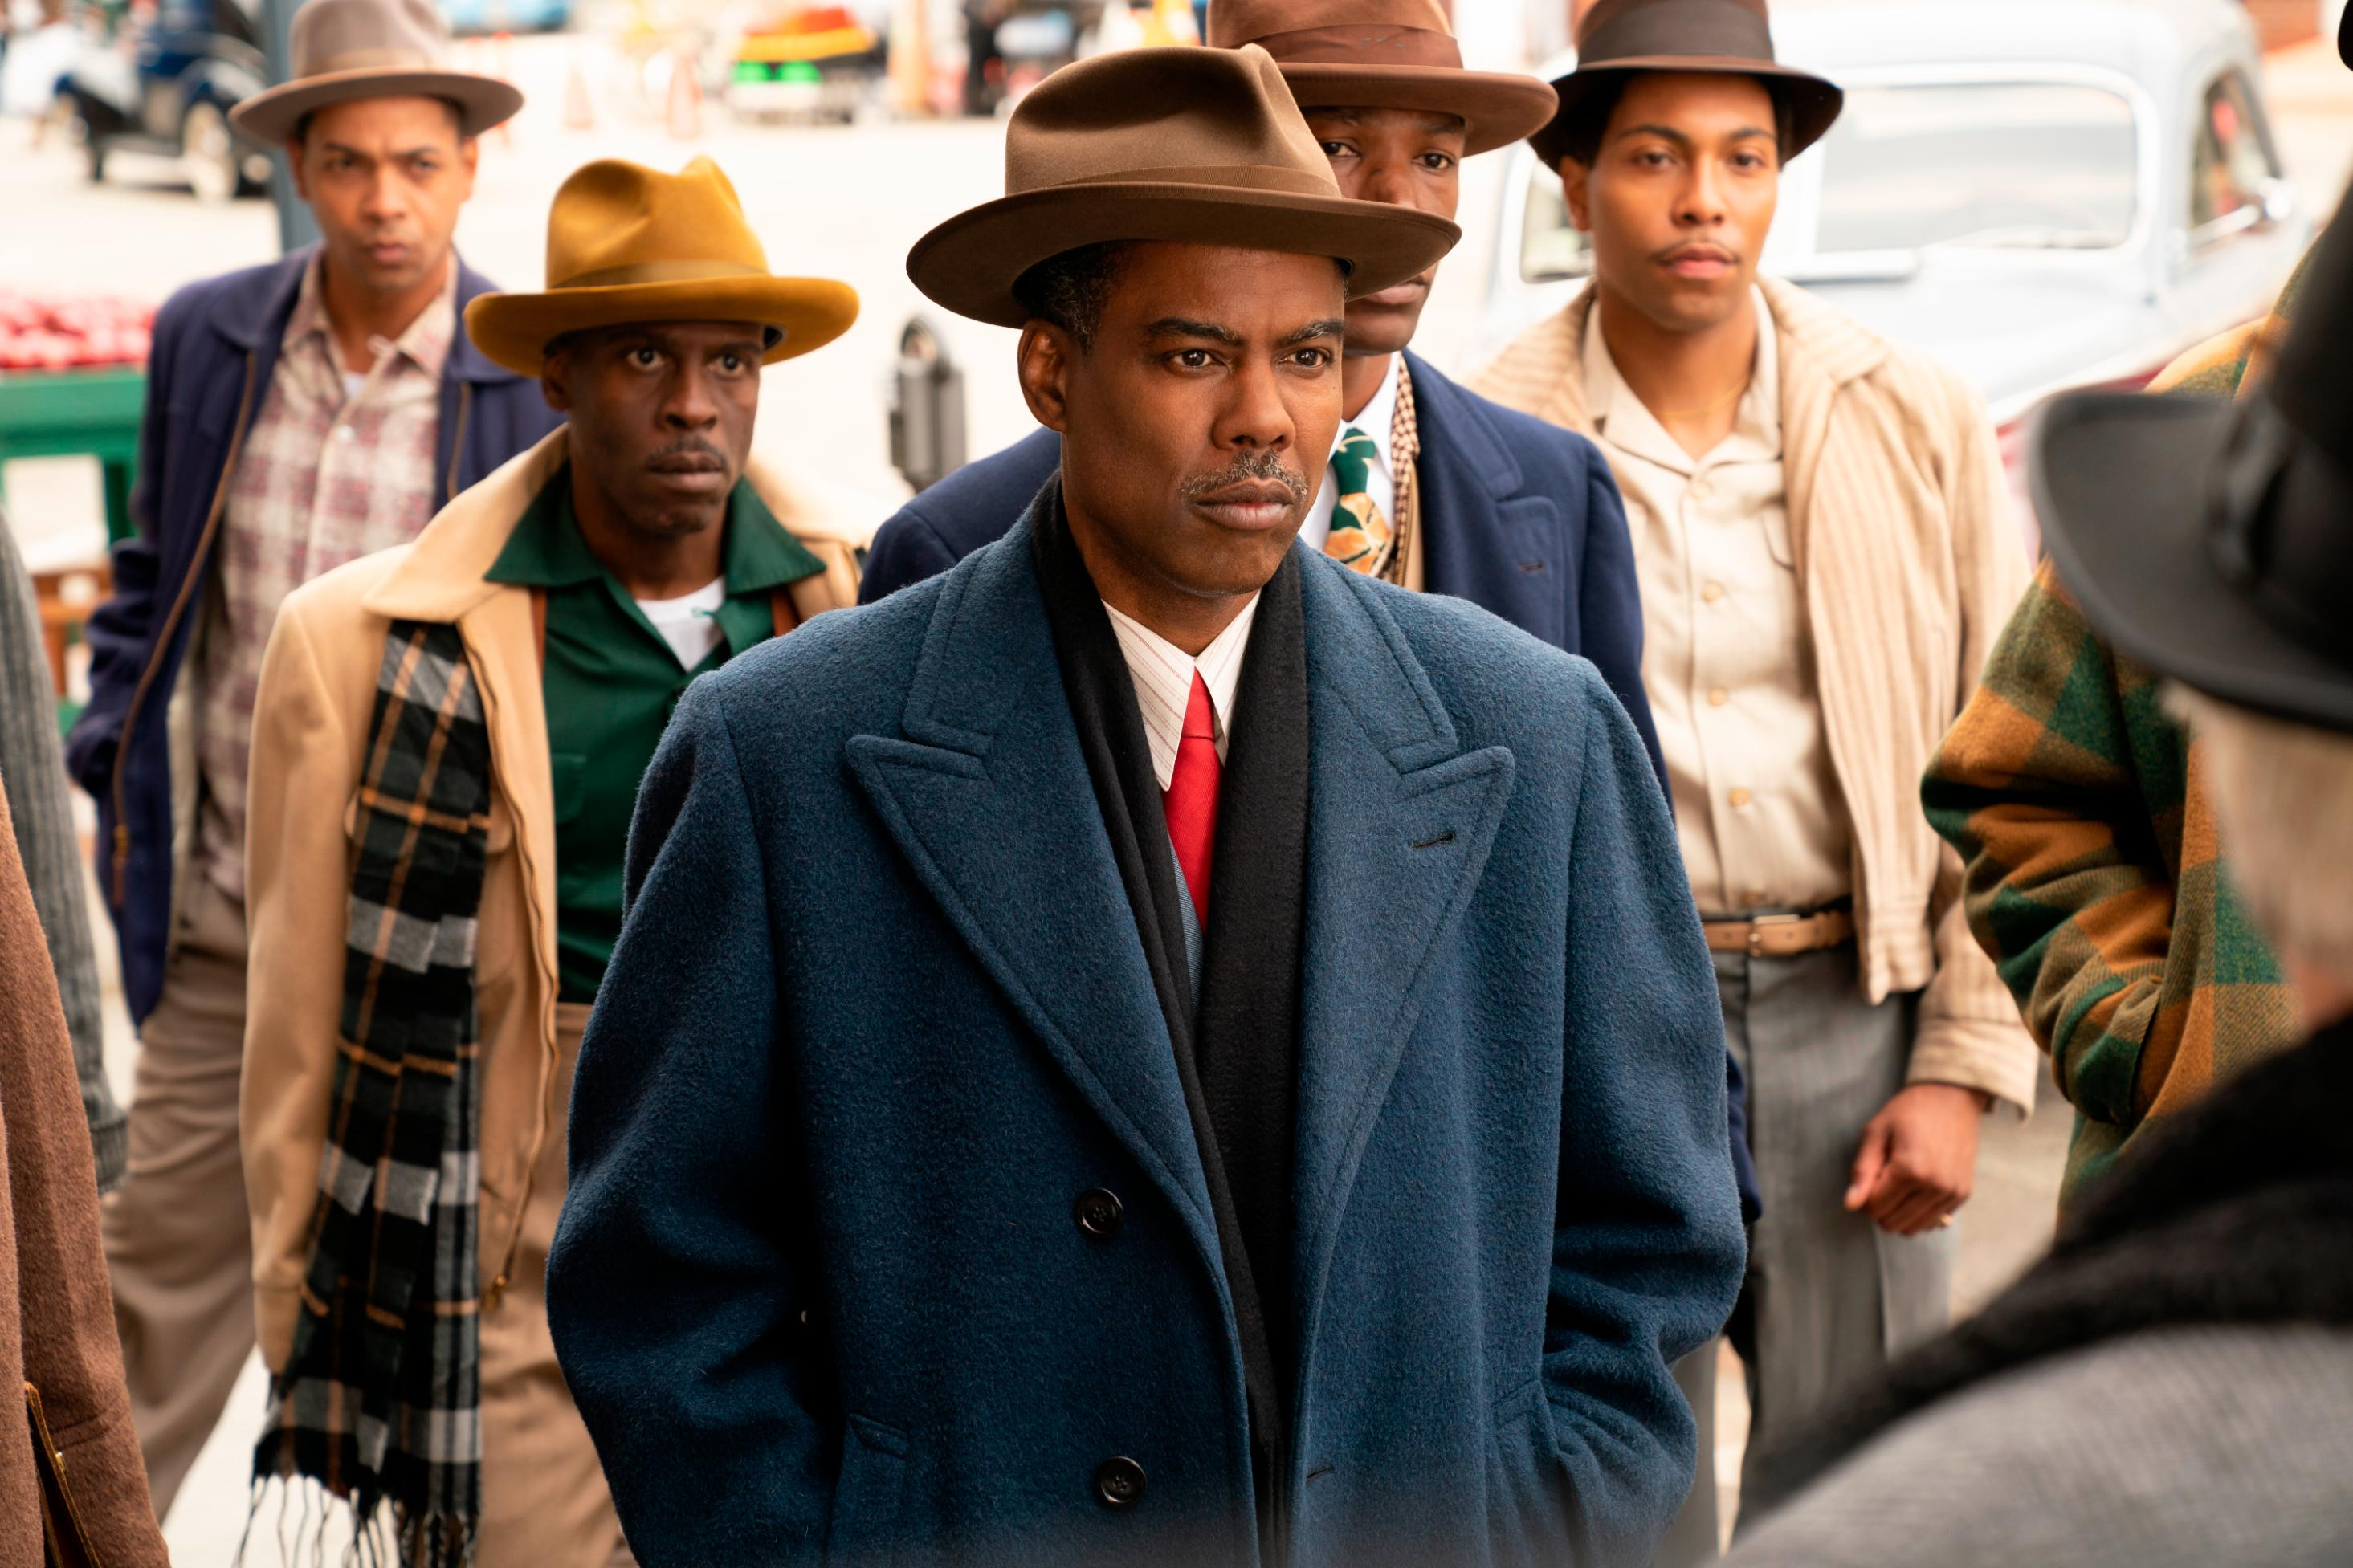 'Fargo' stars Chris Rock in a mob tale that rolls along a bit too slowly